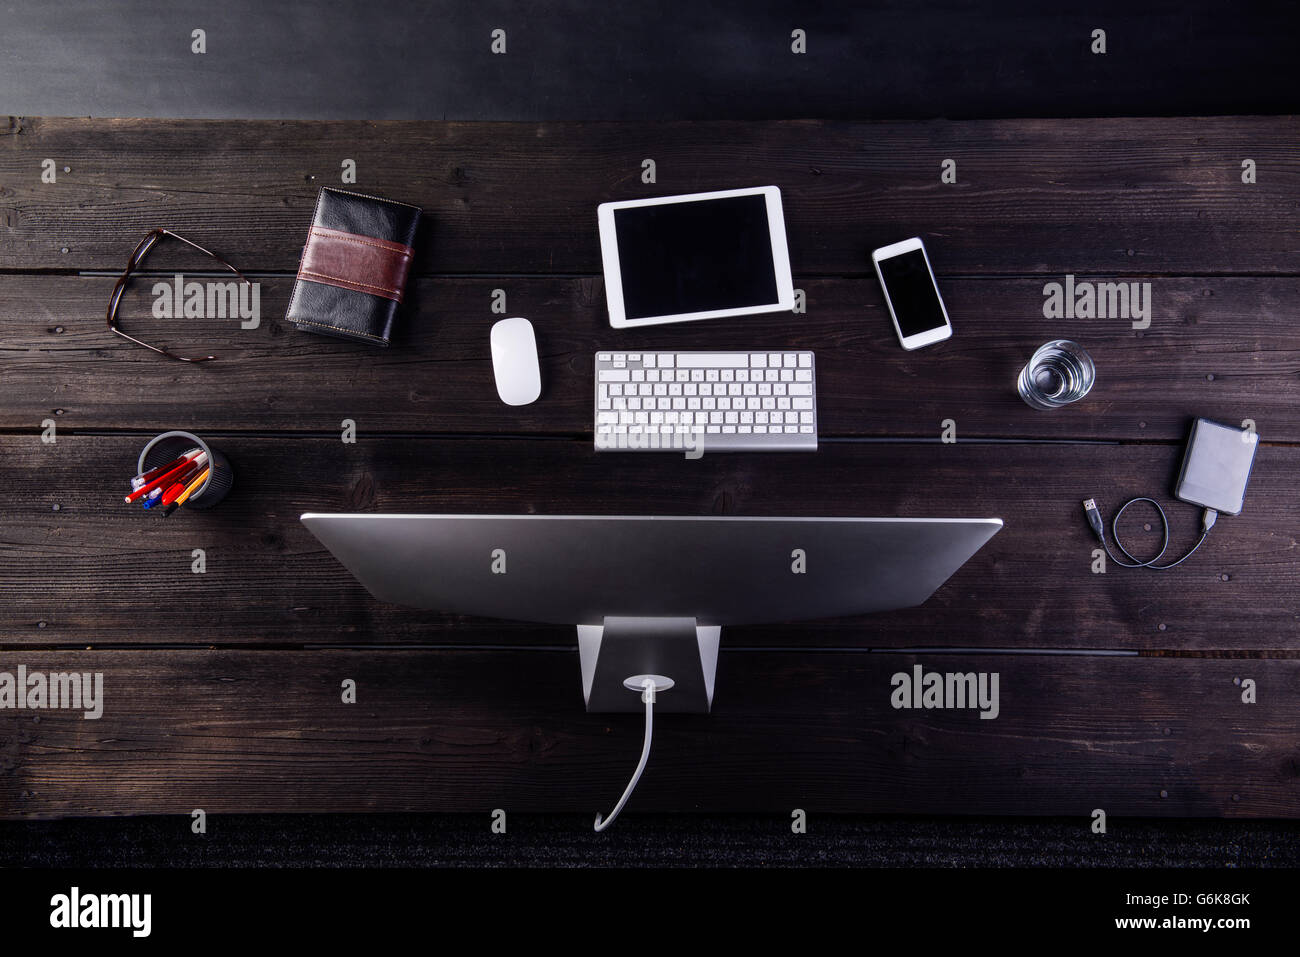 Desk with computer and various digital gadgets - Stock Image